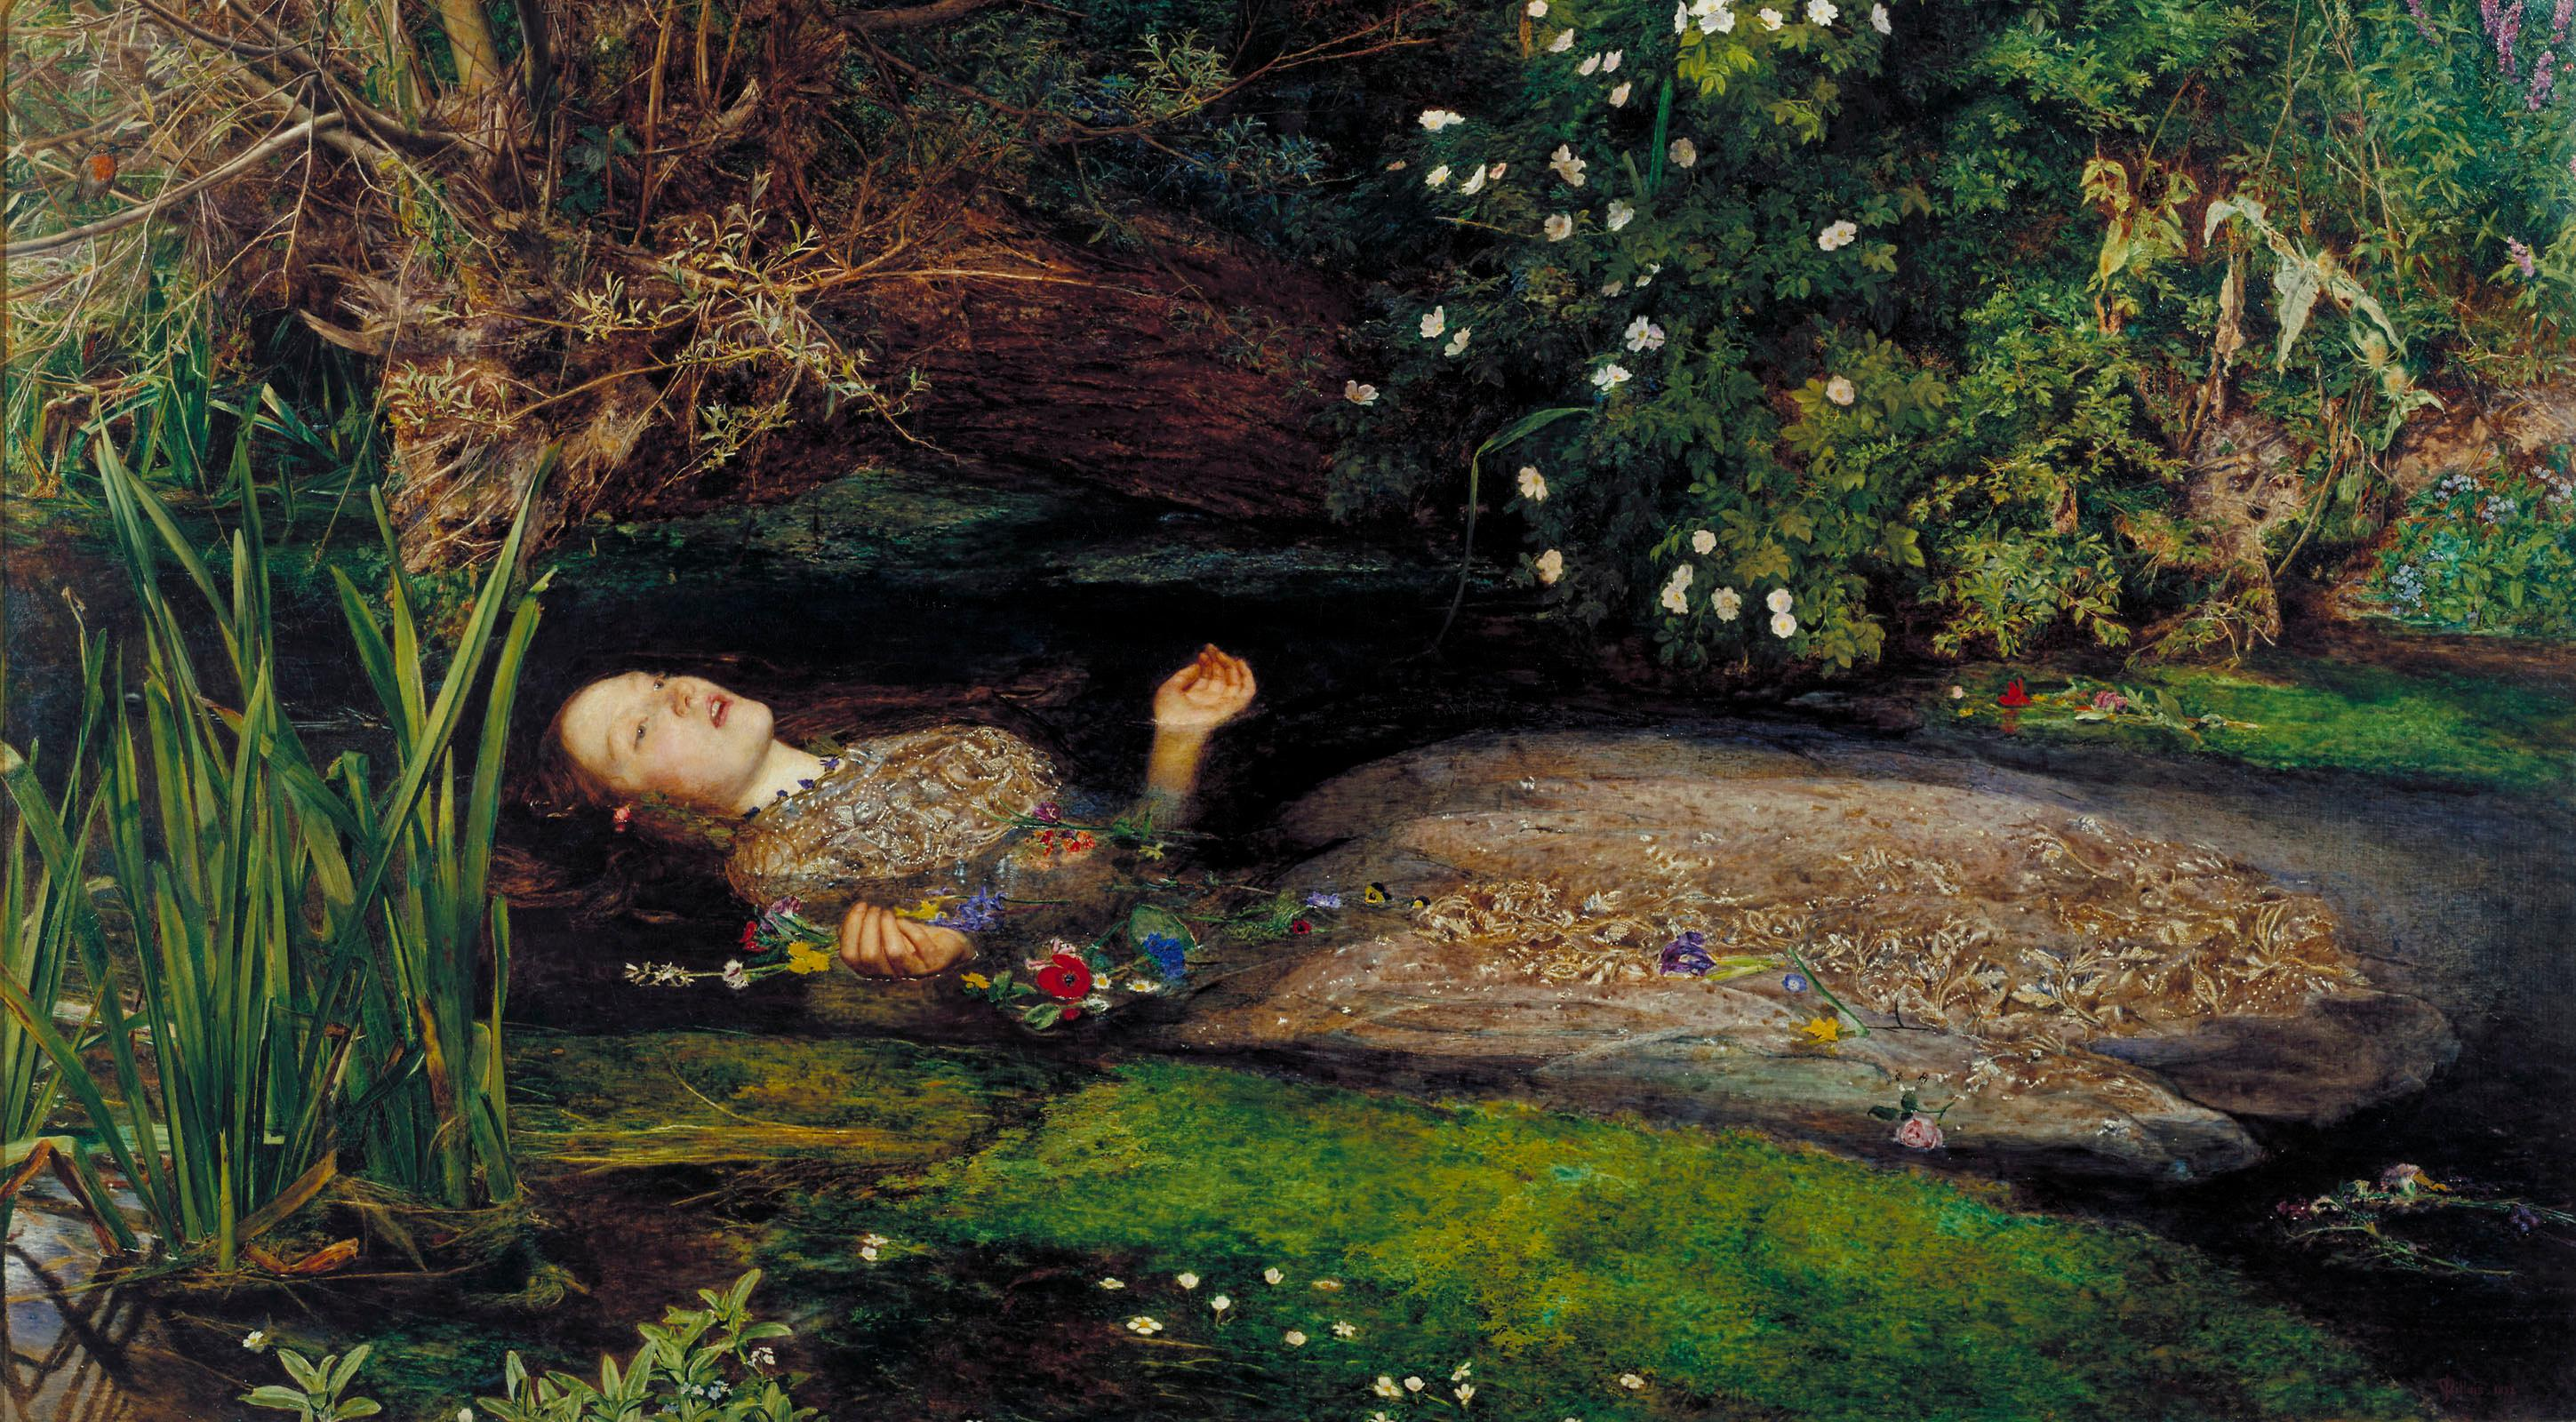 Sensuality, lust and passion: how the Pre-Raphaelites changed the way the world sees women